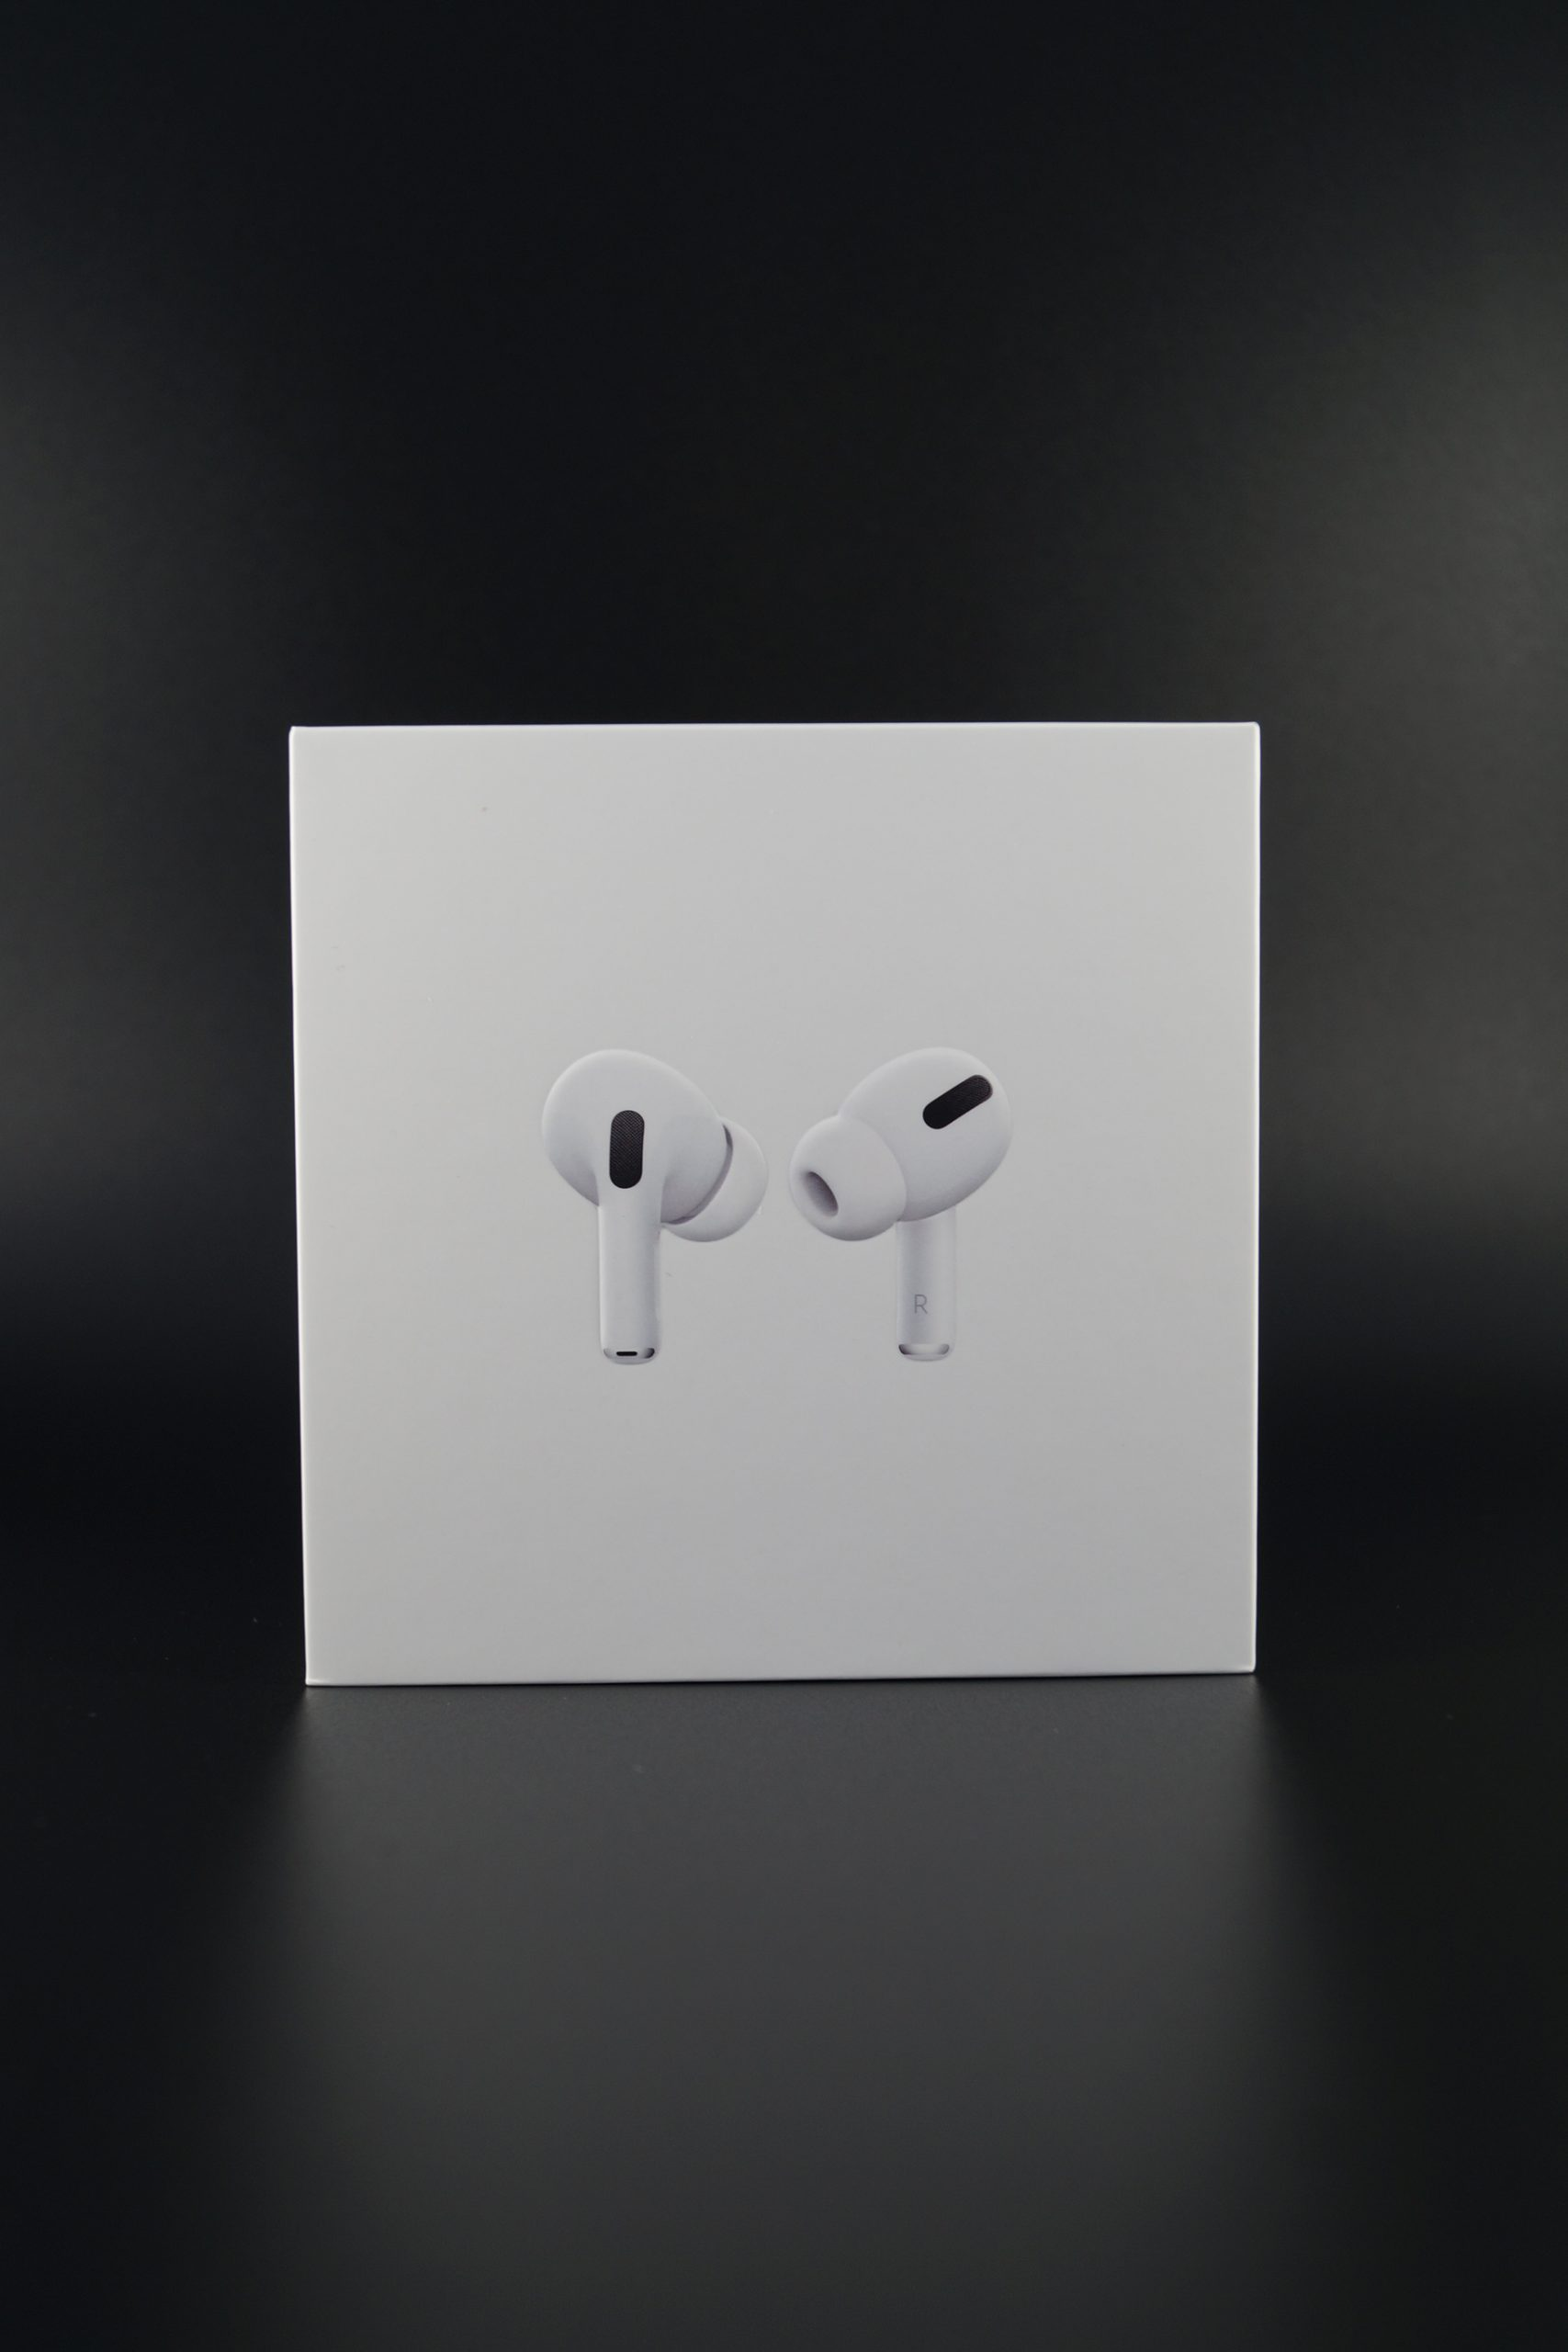 Apple AirPods Pro Test Verpackung